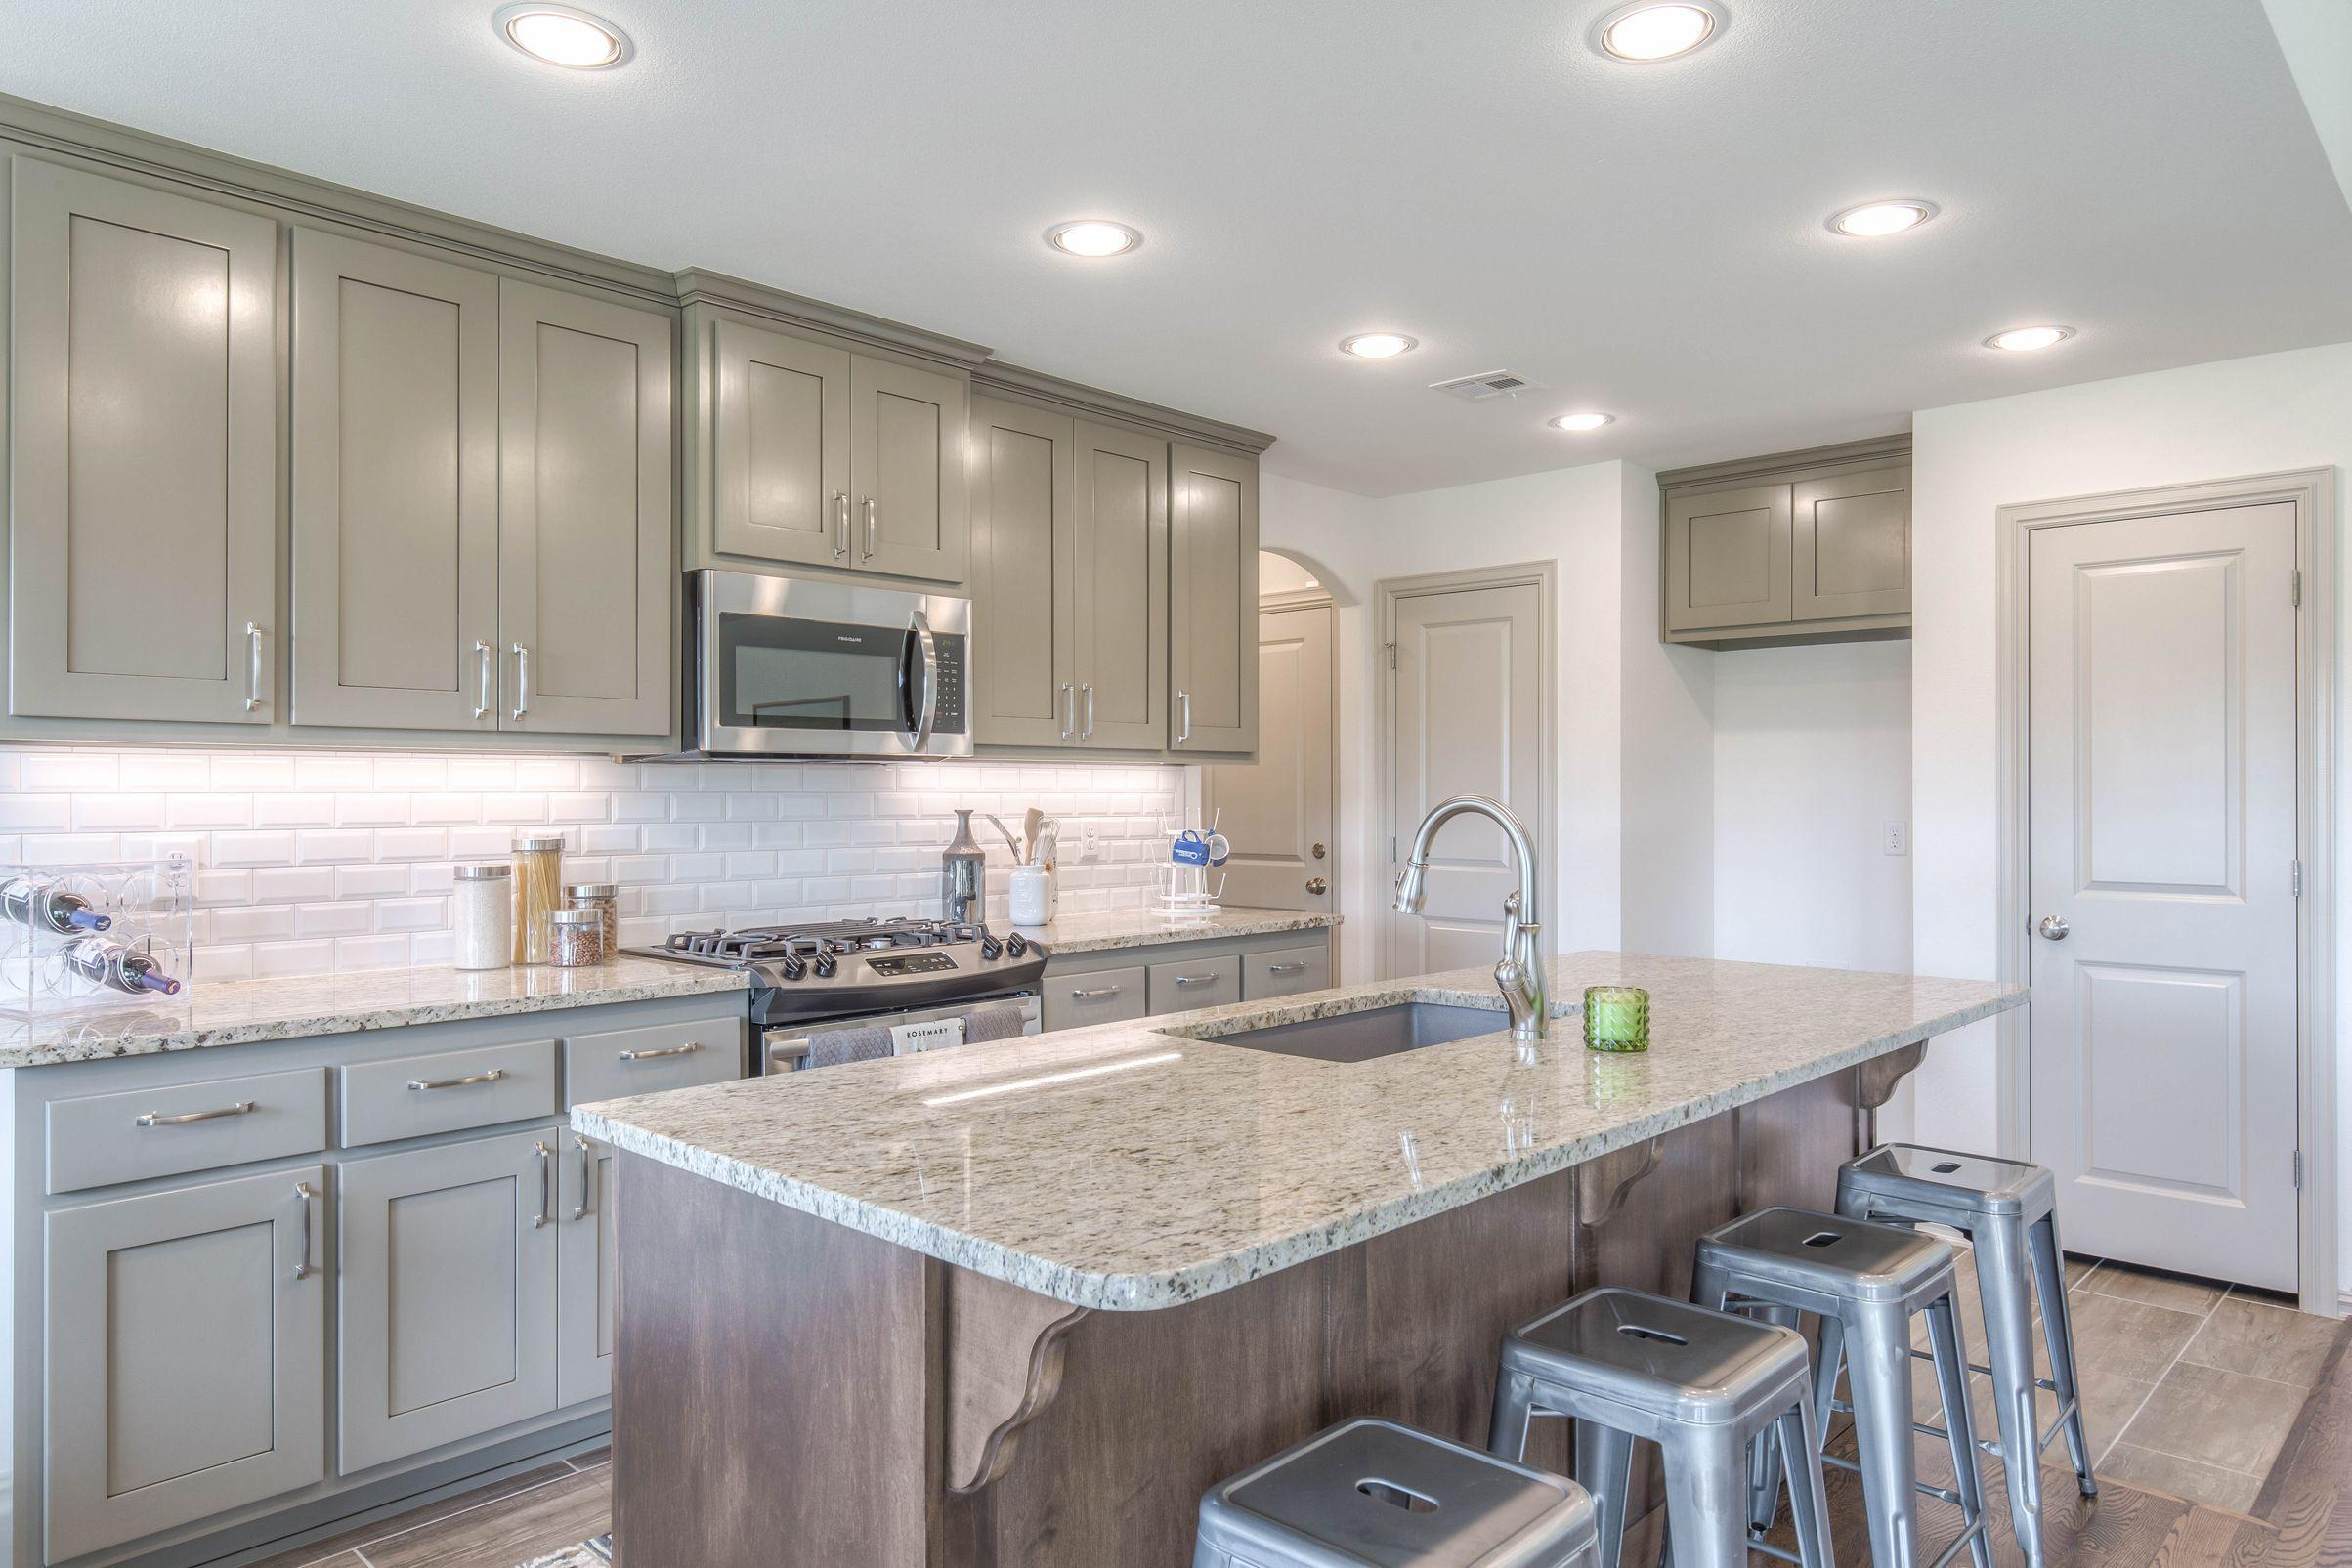 Kitchen featured in the Izzy II Up By Concept Builders, Inc in Tulsa, OK